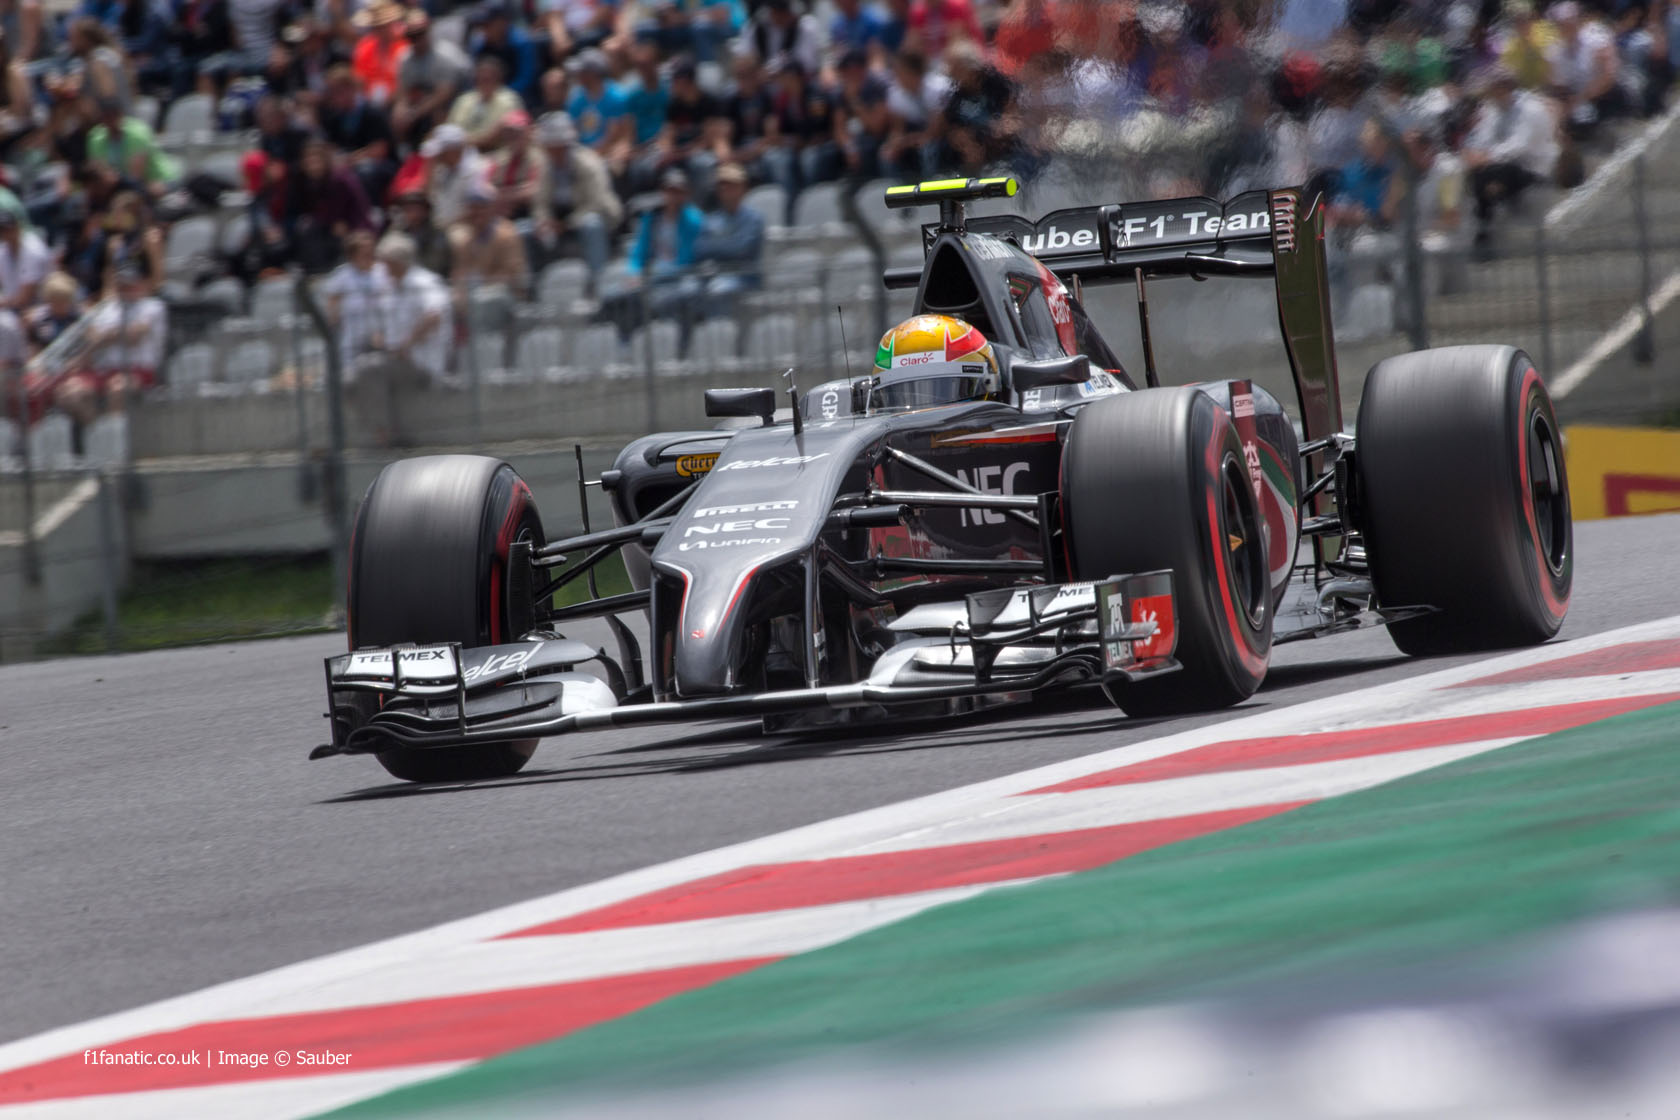 Esteban Gutierrez, Sauber, Red Bull Ring, 2014